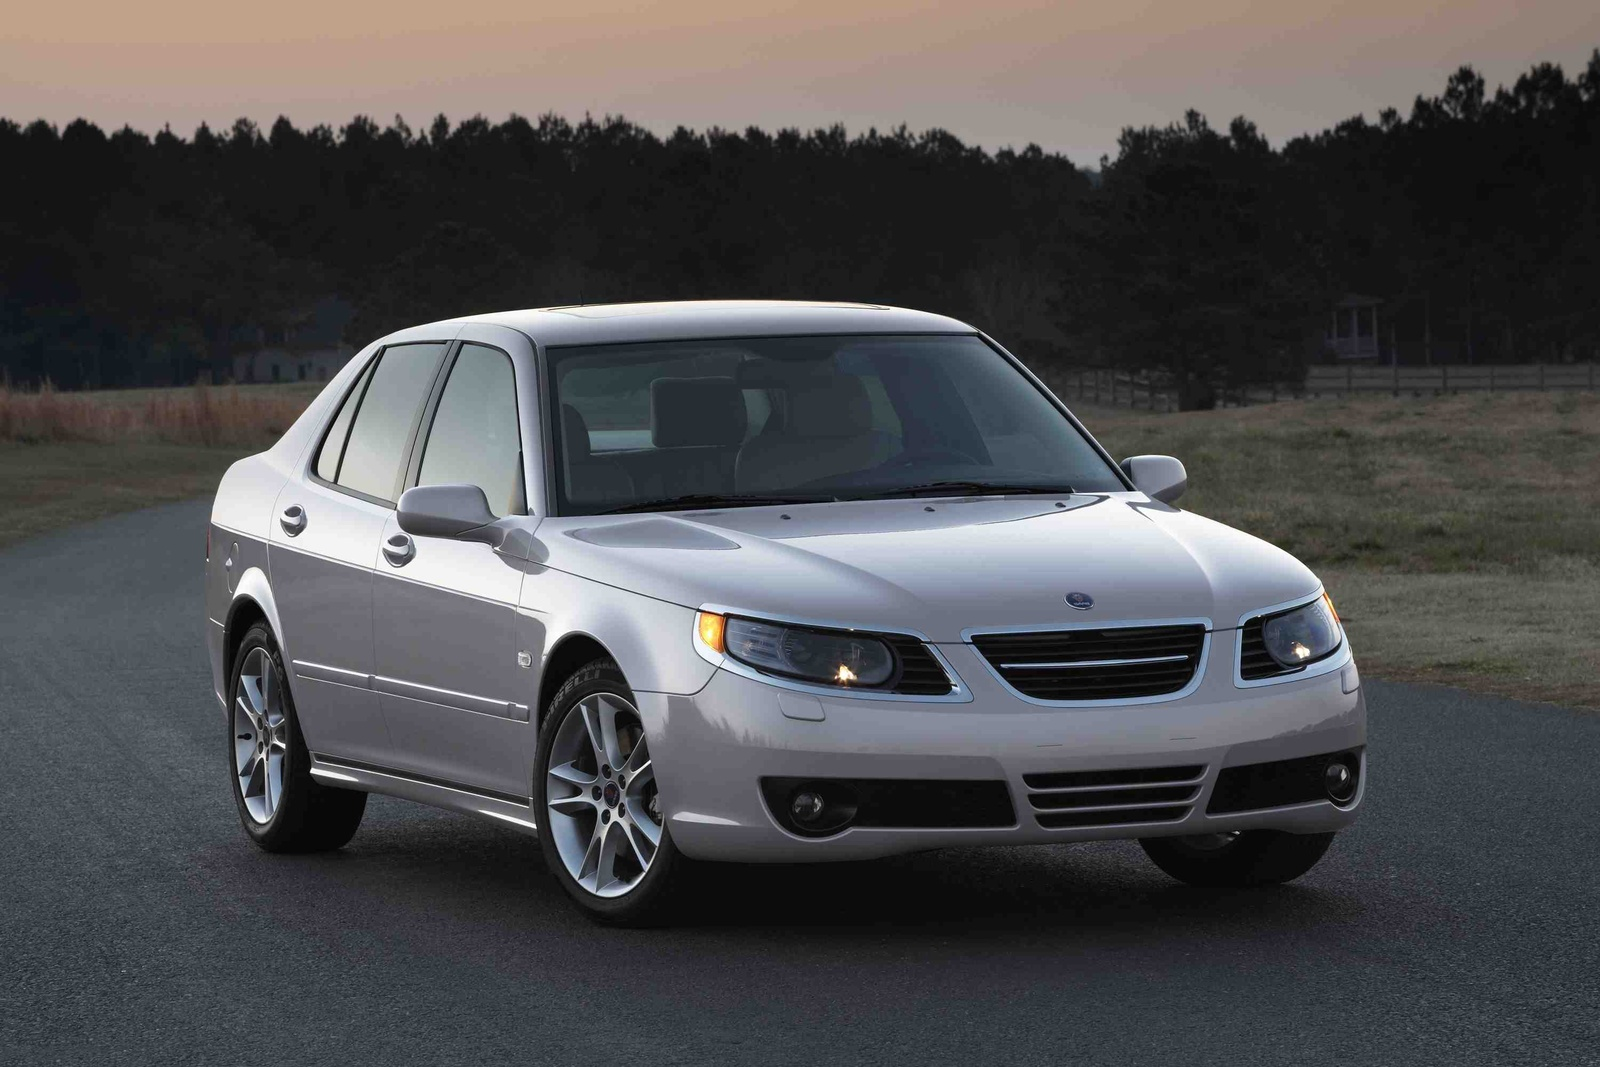 2008 saab 9 5 information and photos zombiedrive. Black Bedroom Furniture Sets. Home Design Ideas